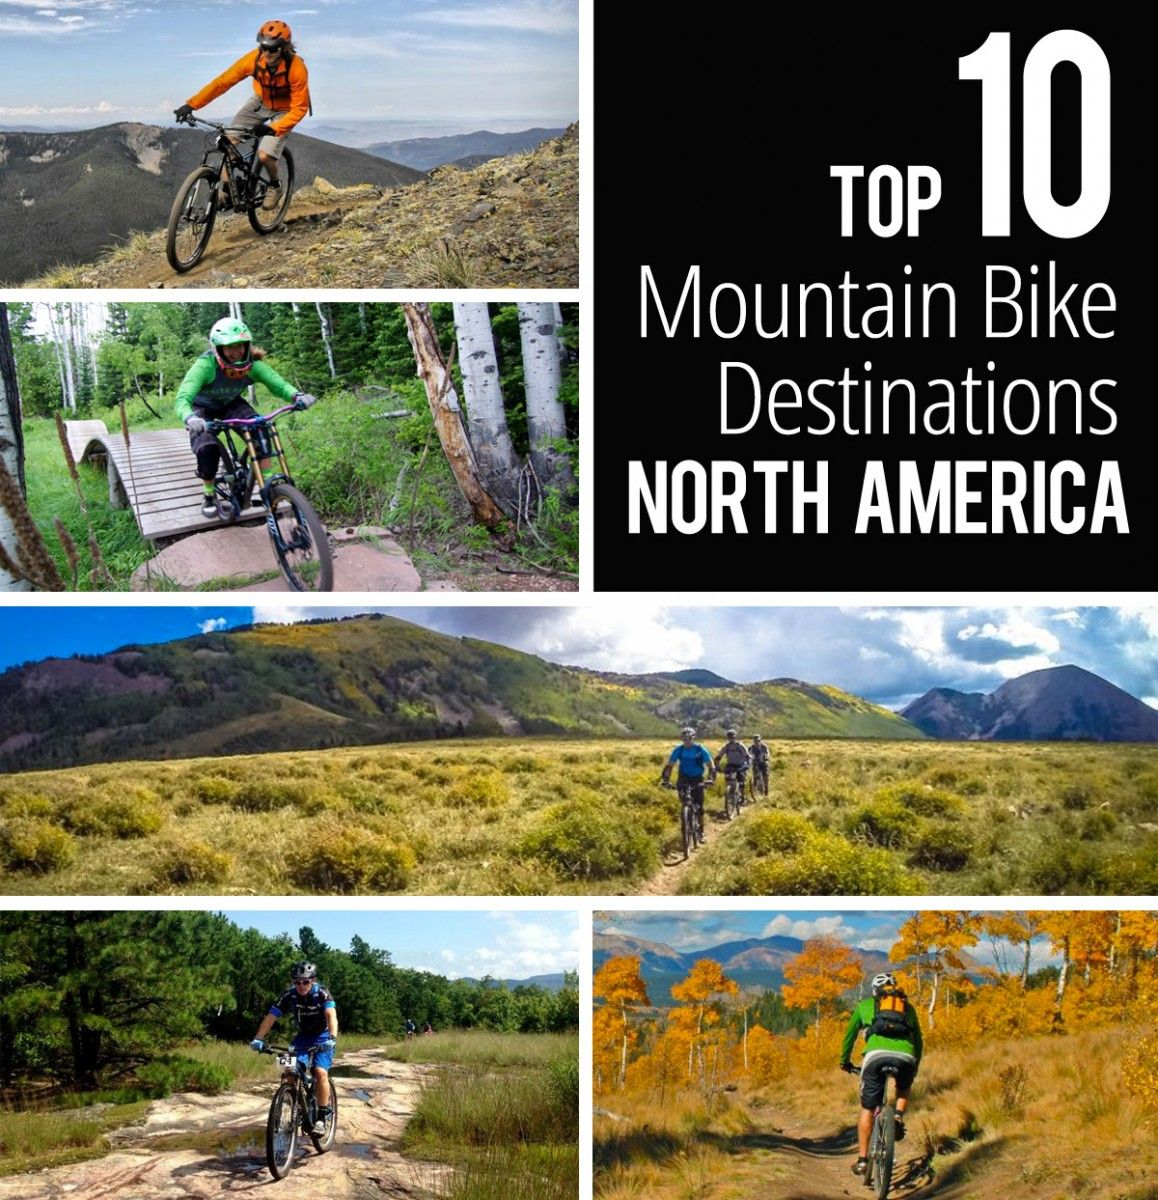 The Top 10 Mountain Bike Destinations As Chosen By The People